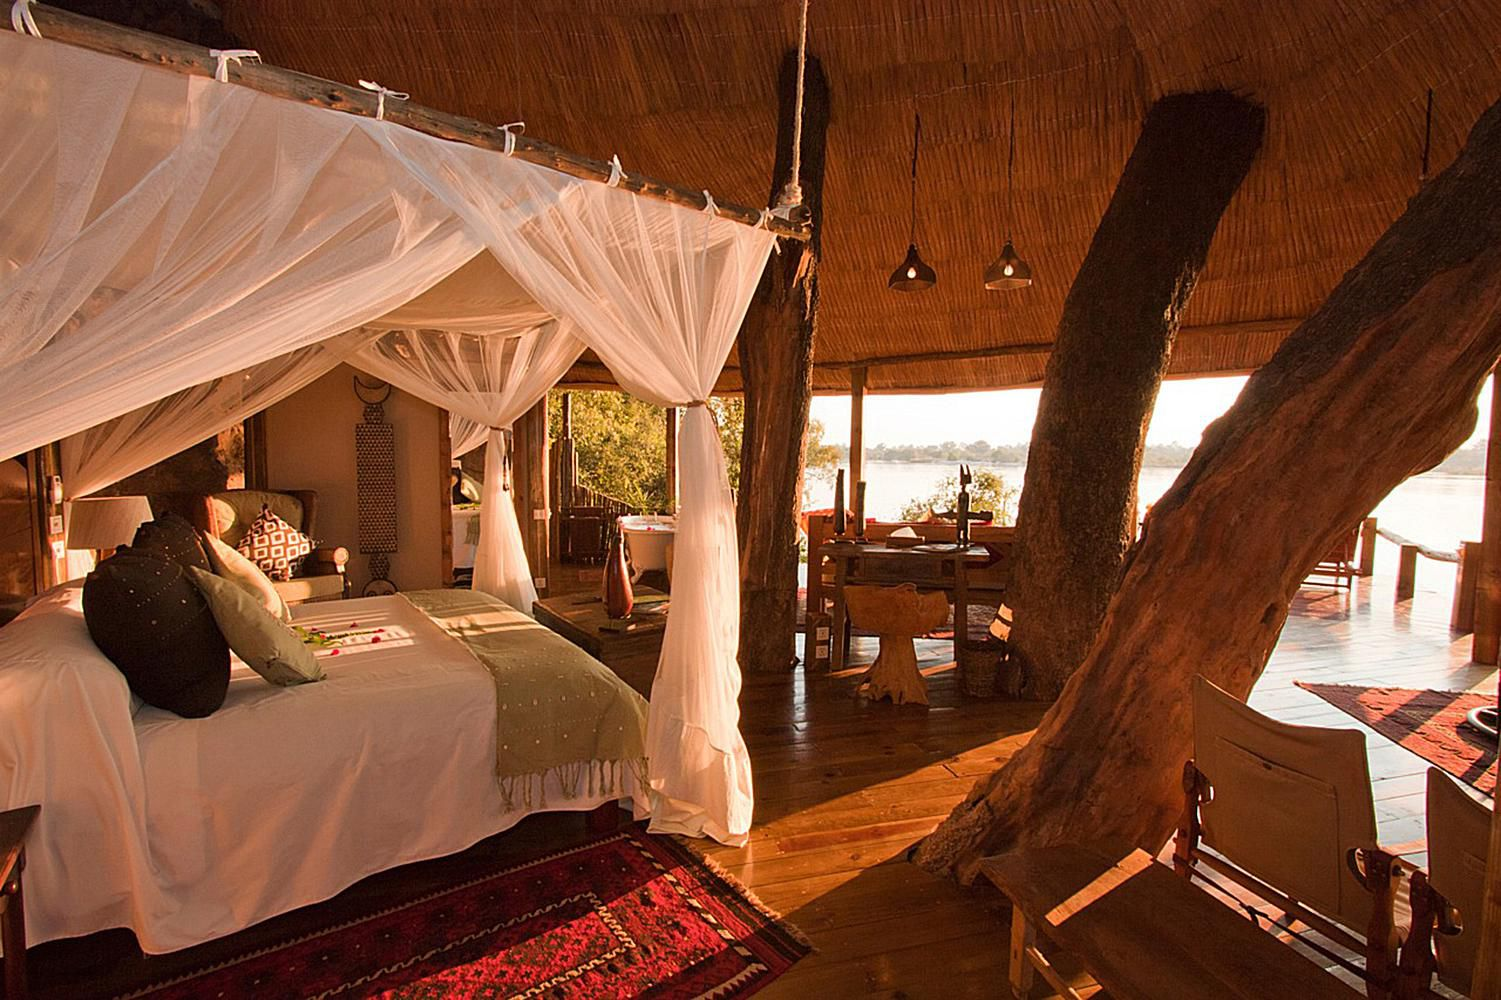 Unusual Accommodations Built Just for Adventurous Travelers